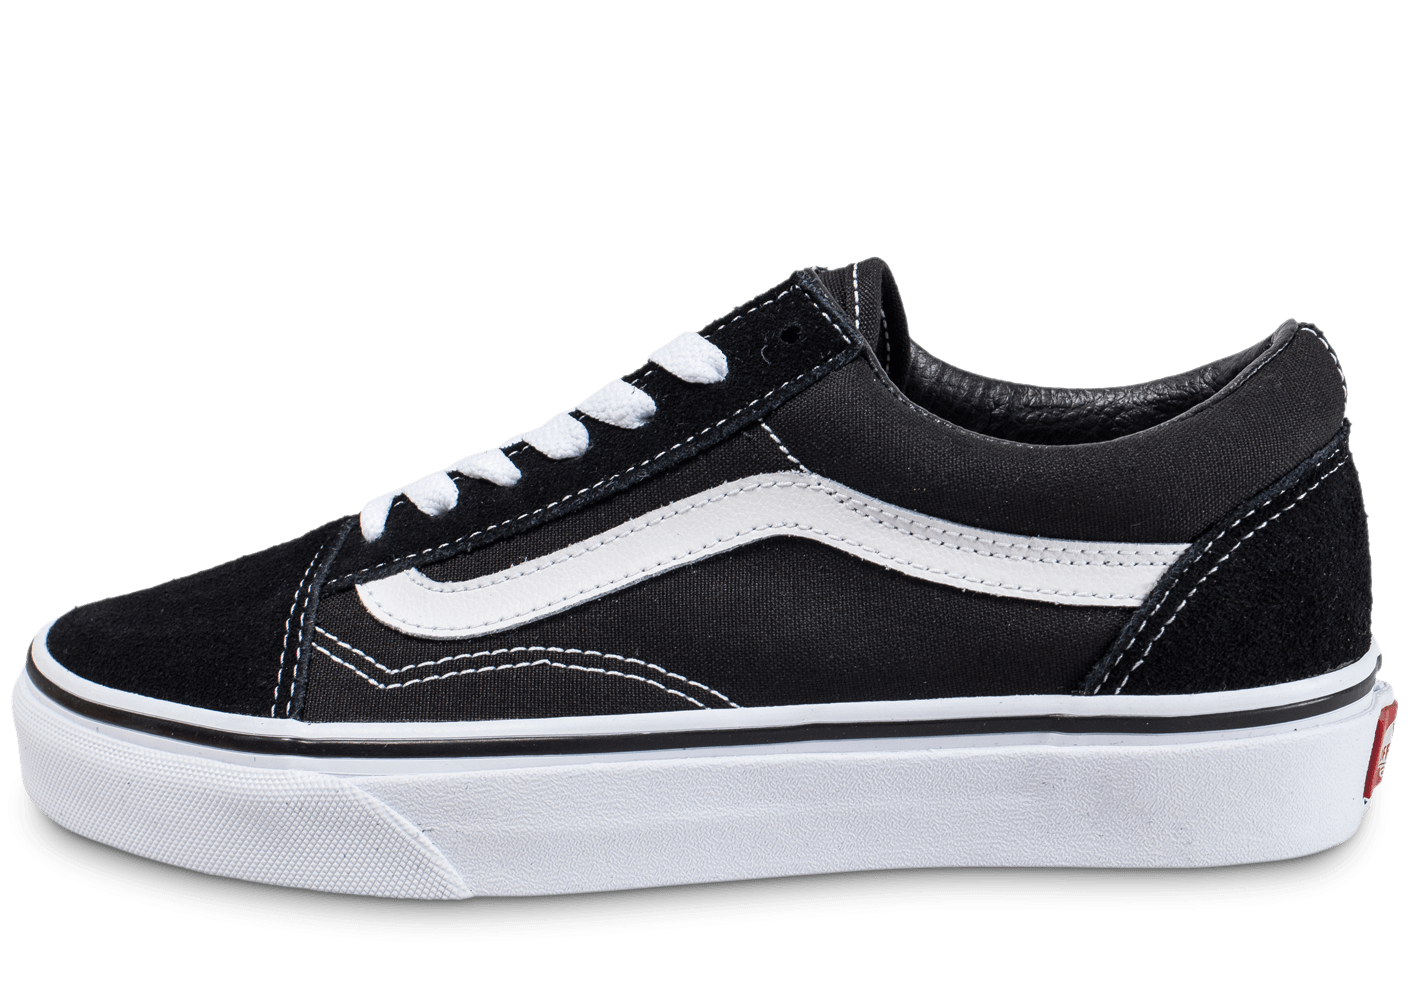 vans old skool low noire et blanche chaussures femme chausport. Black Bedroom Furniture Sets. Home Design Ideas